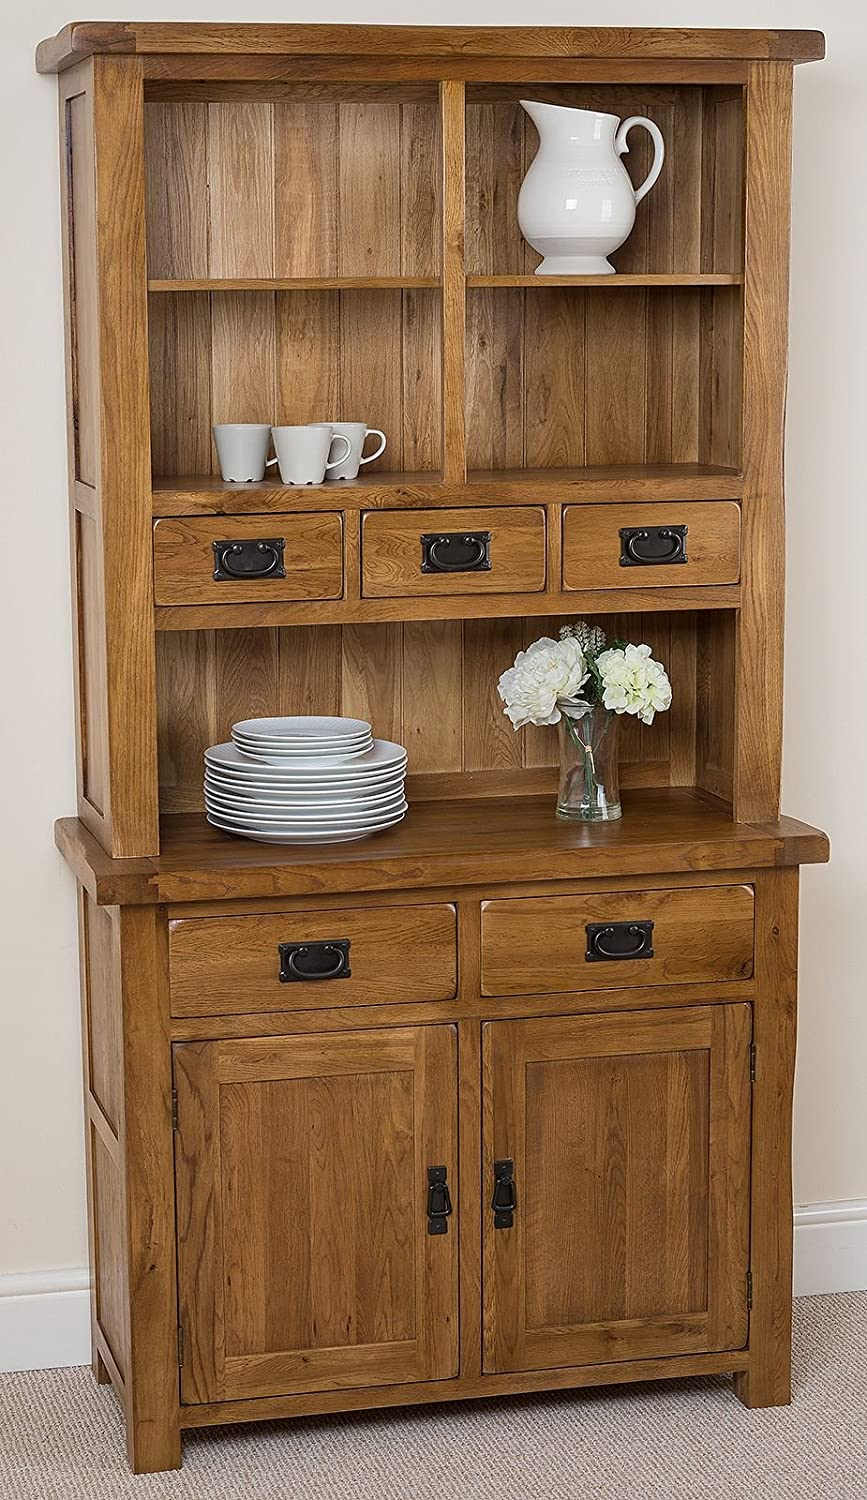 Cotswold Rustic Solid Oak Small Welsh Dresser1000 X 453 1896 Cm Amazoncouk Kitchen Home